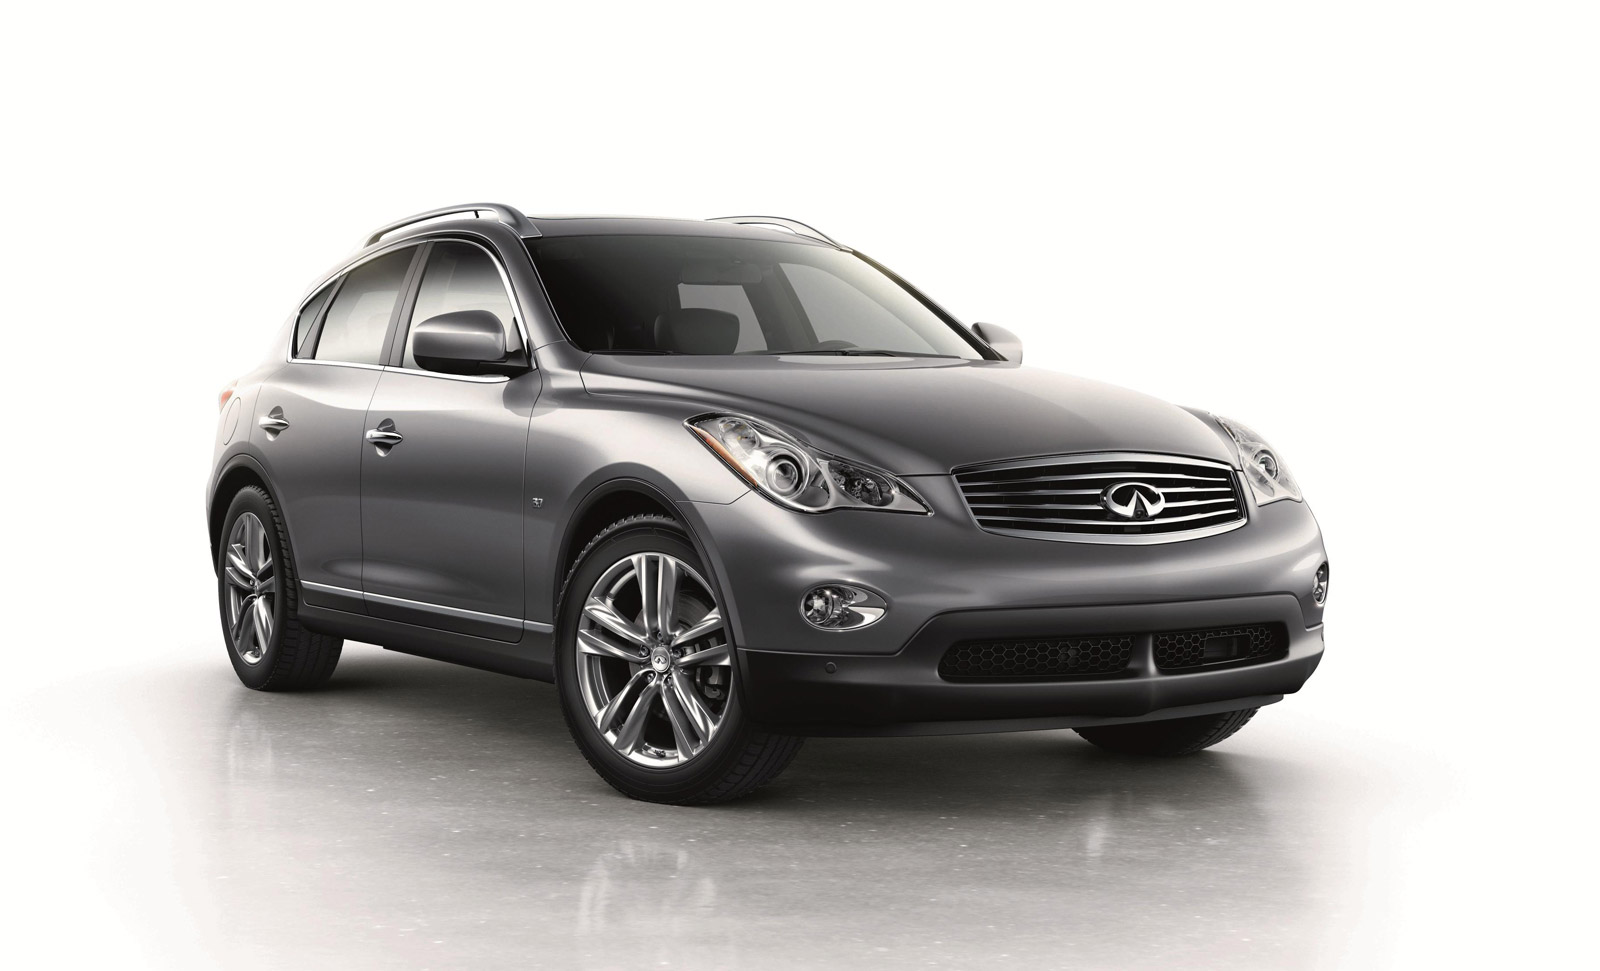 2015 infiniti qx50 review ratings specs prices and photos 2015 infiniti qx50 review ratings specs prices and photos the car connection vanachro Image collections